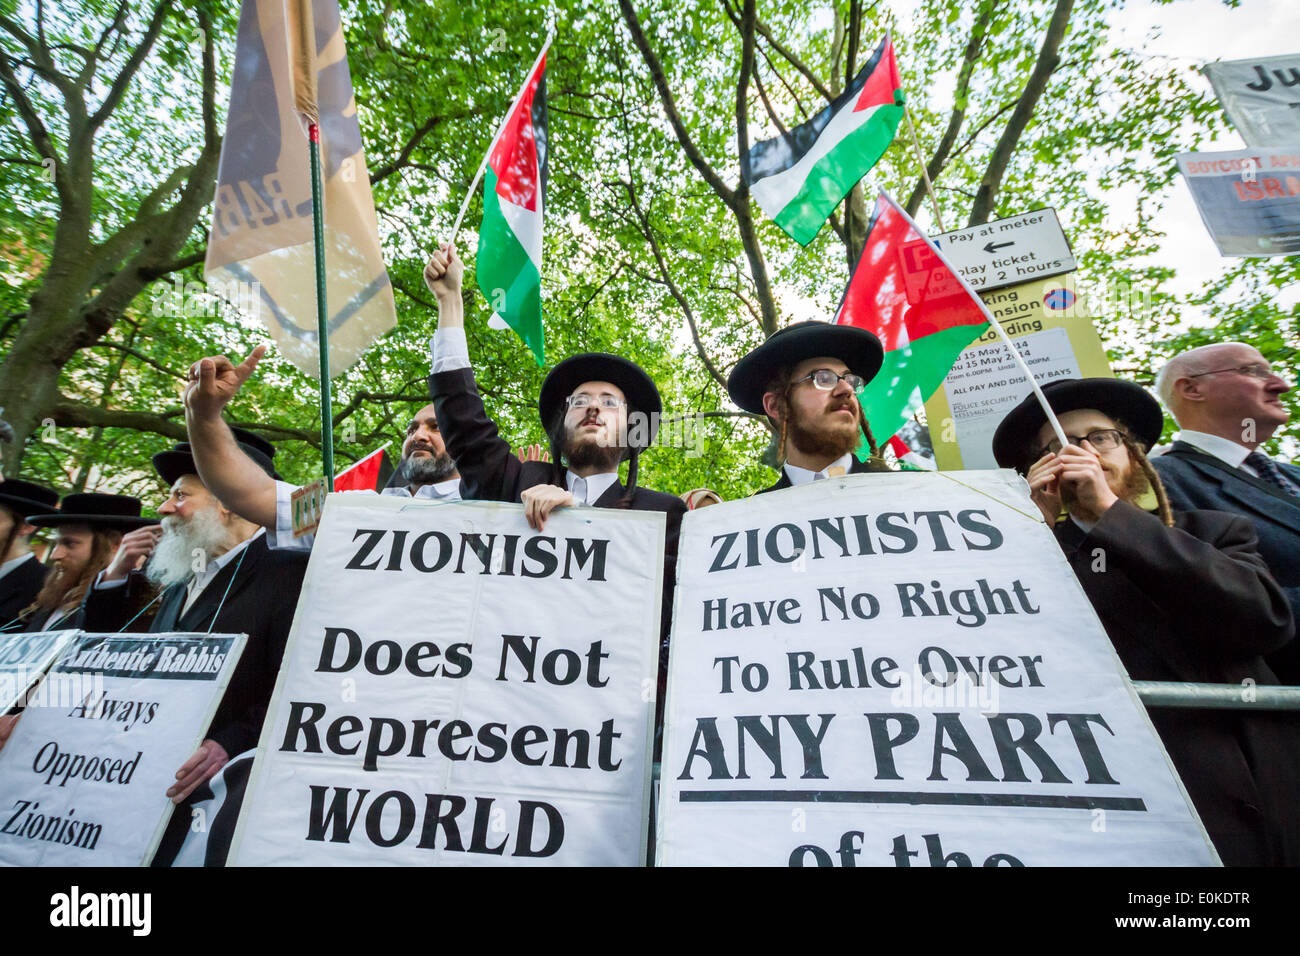 London, UK. 15th May, 2014. Jews against Zionism. Pro-Palestinian Protest against Tzipi Livni at JNF Event in London - Stock Image